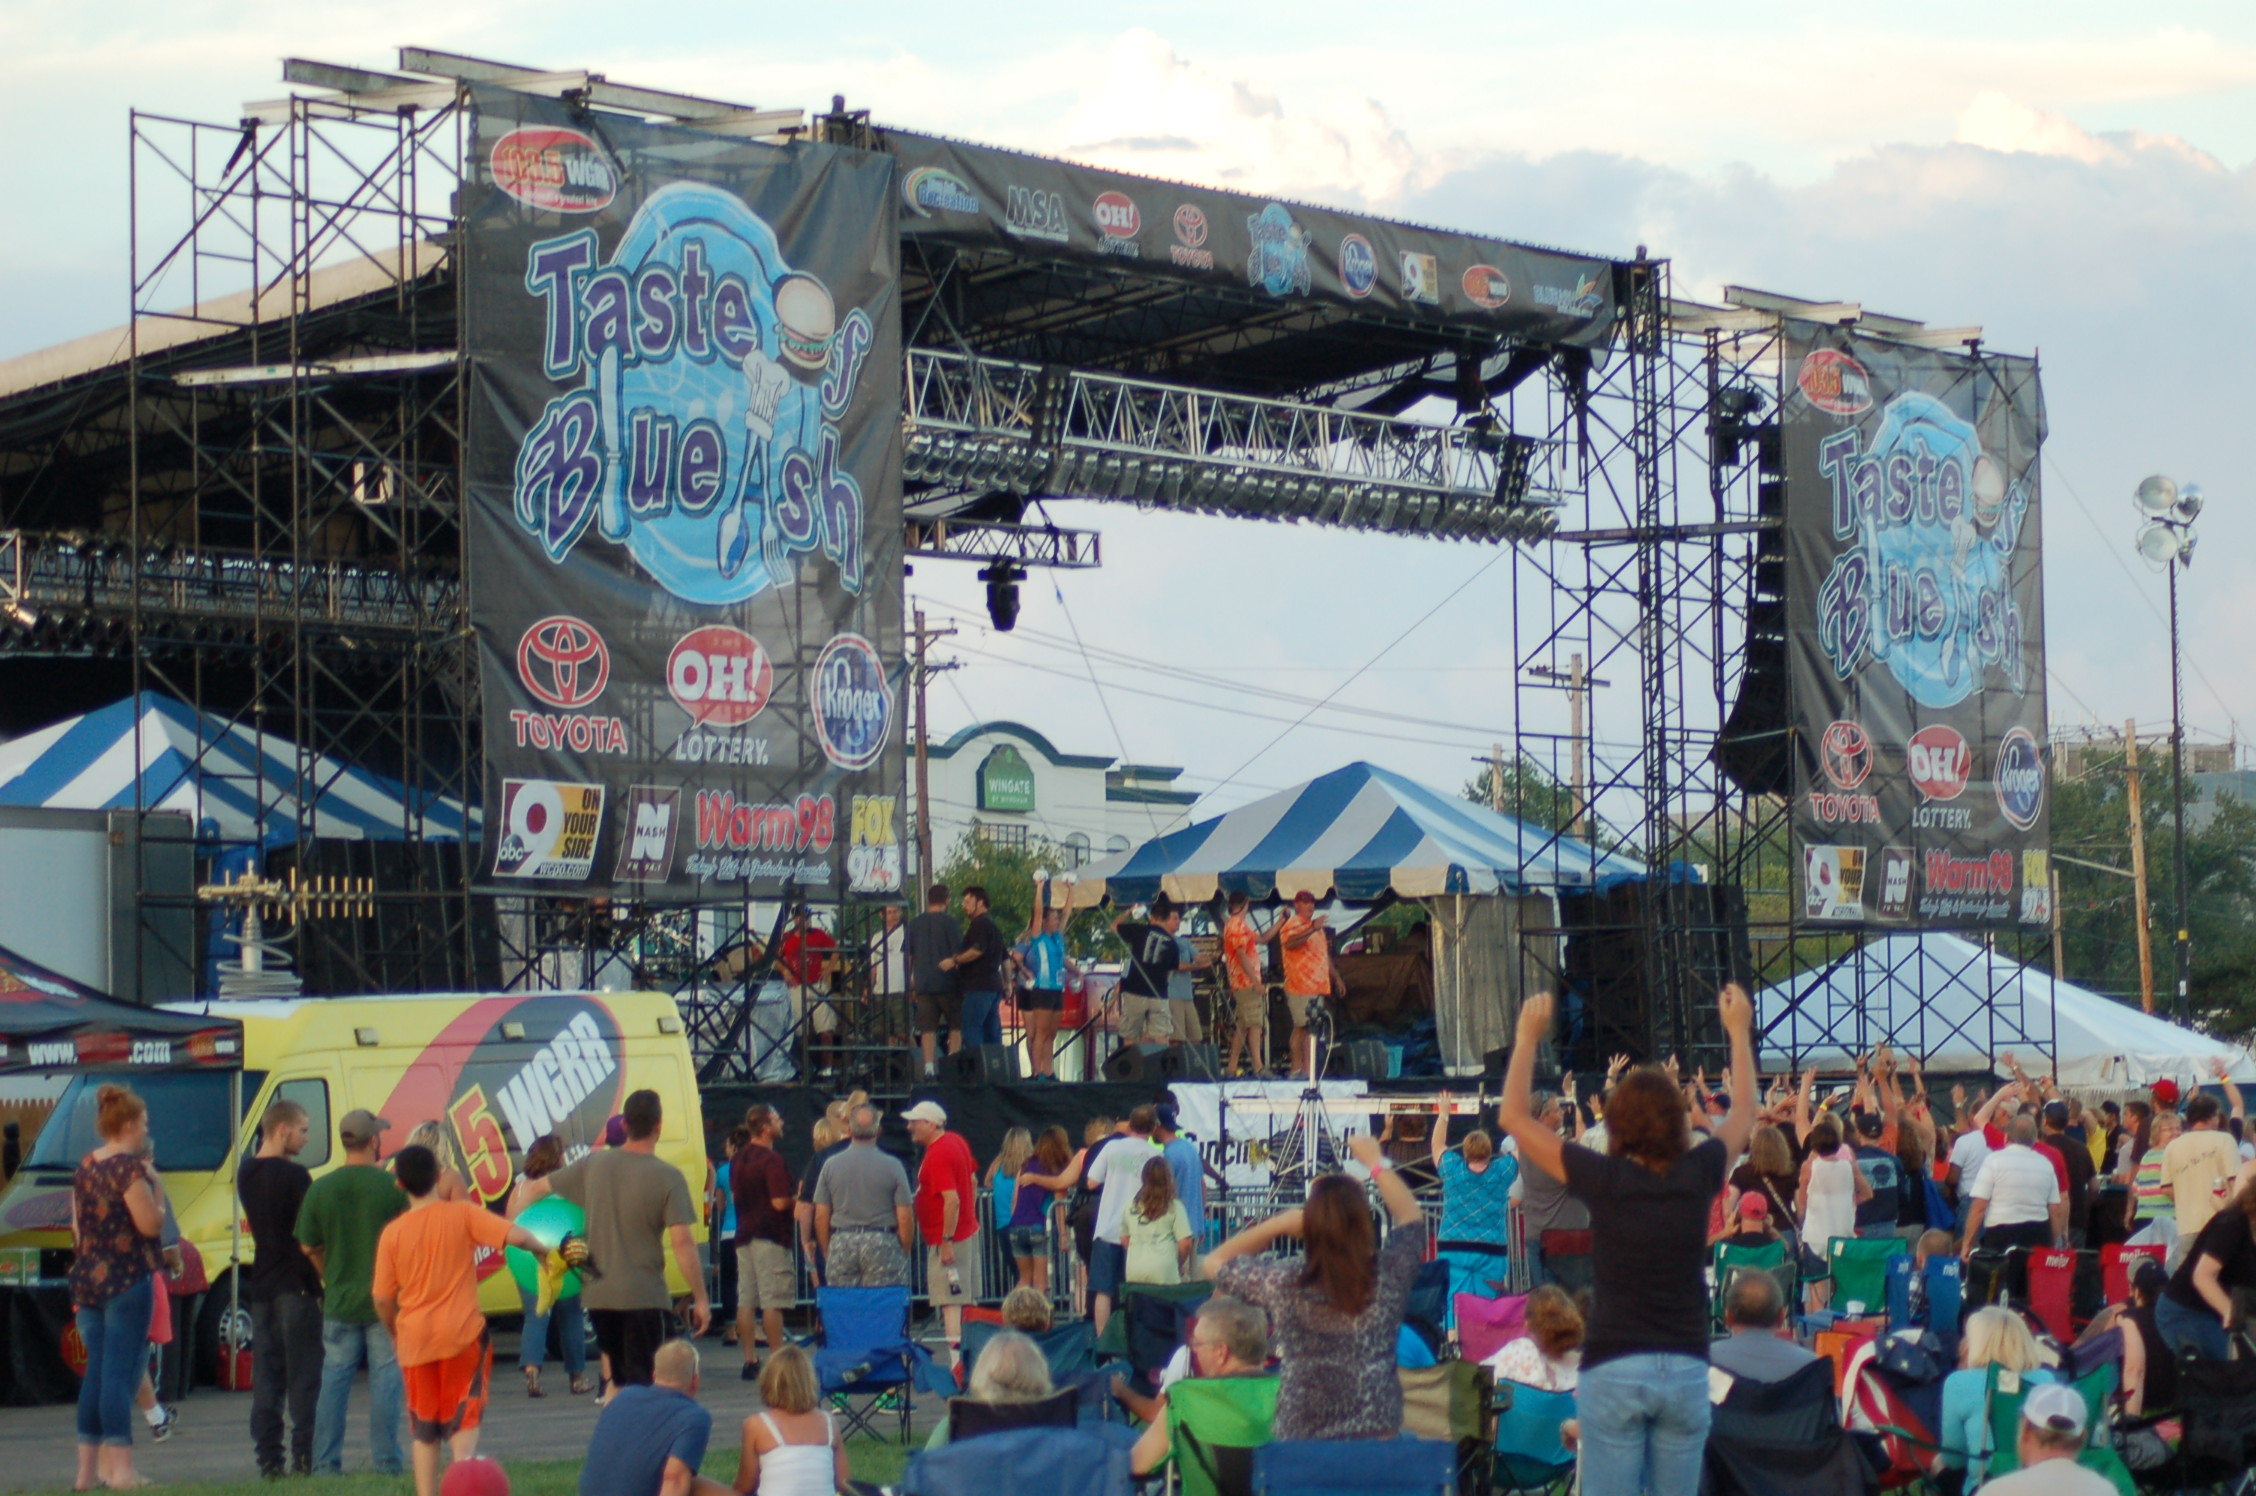 Taste of Blue Ash stage with crowd